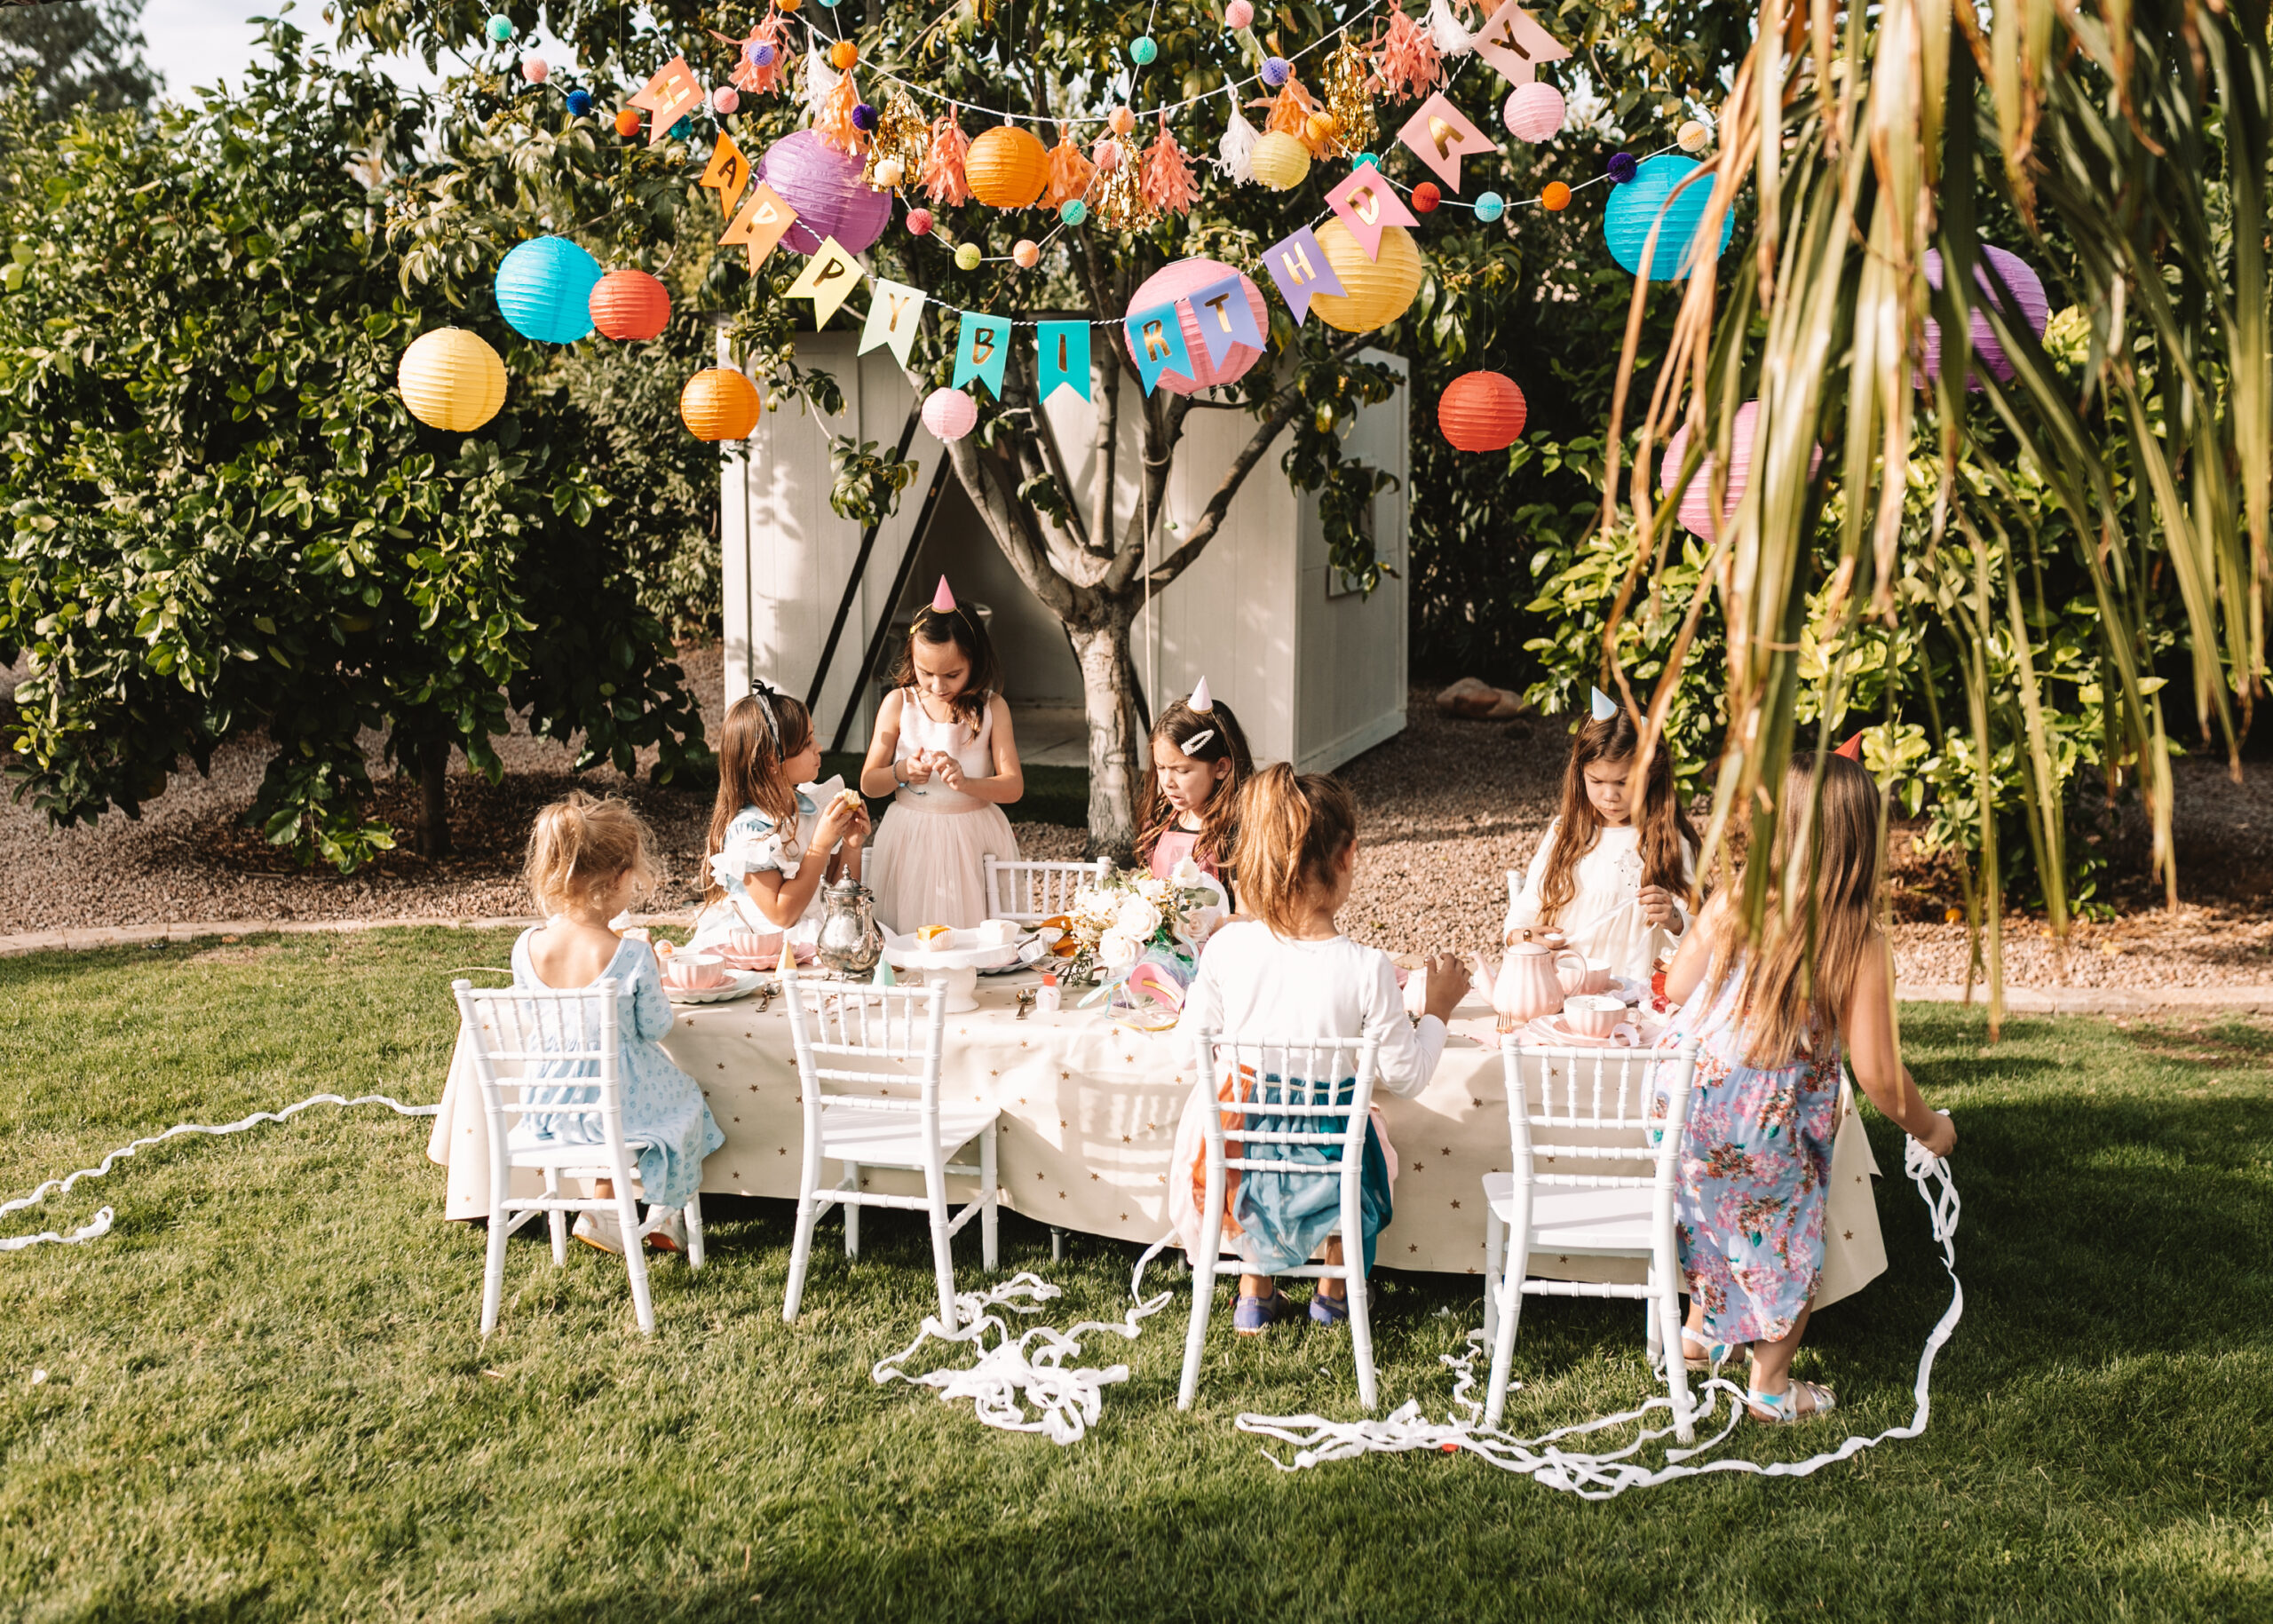 opening their surprise balls for this very merry unbirthday party! #thelovedesignedlife #birthdayparty #birthdaypartyideas